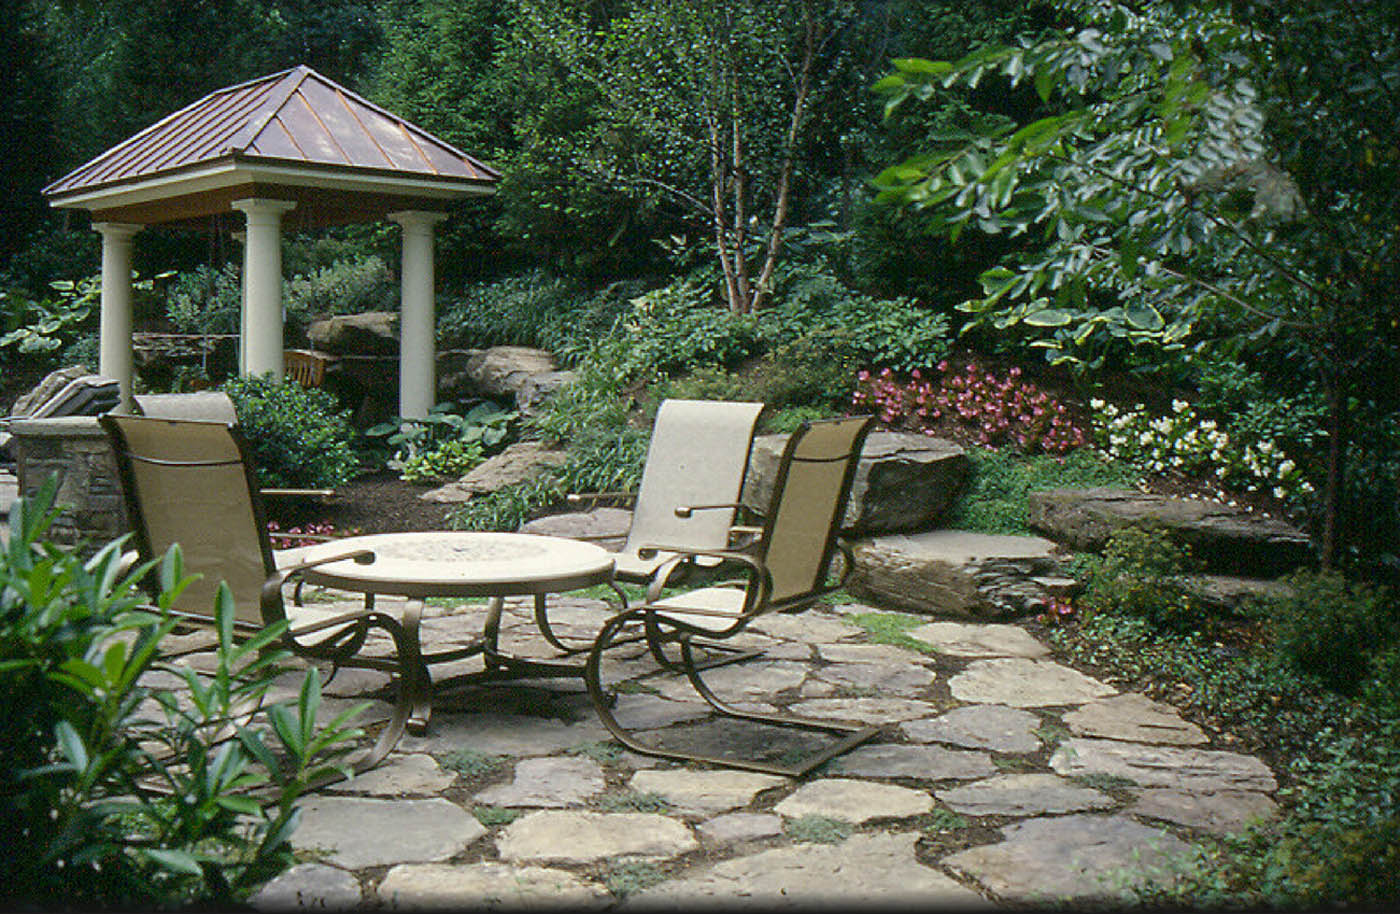 Pin by Vicki Calhoun on Outside | Pinterest on Rock Patio Designs id=11993